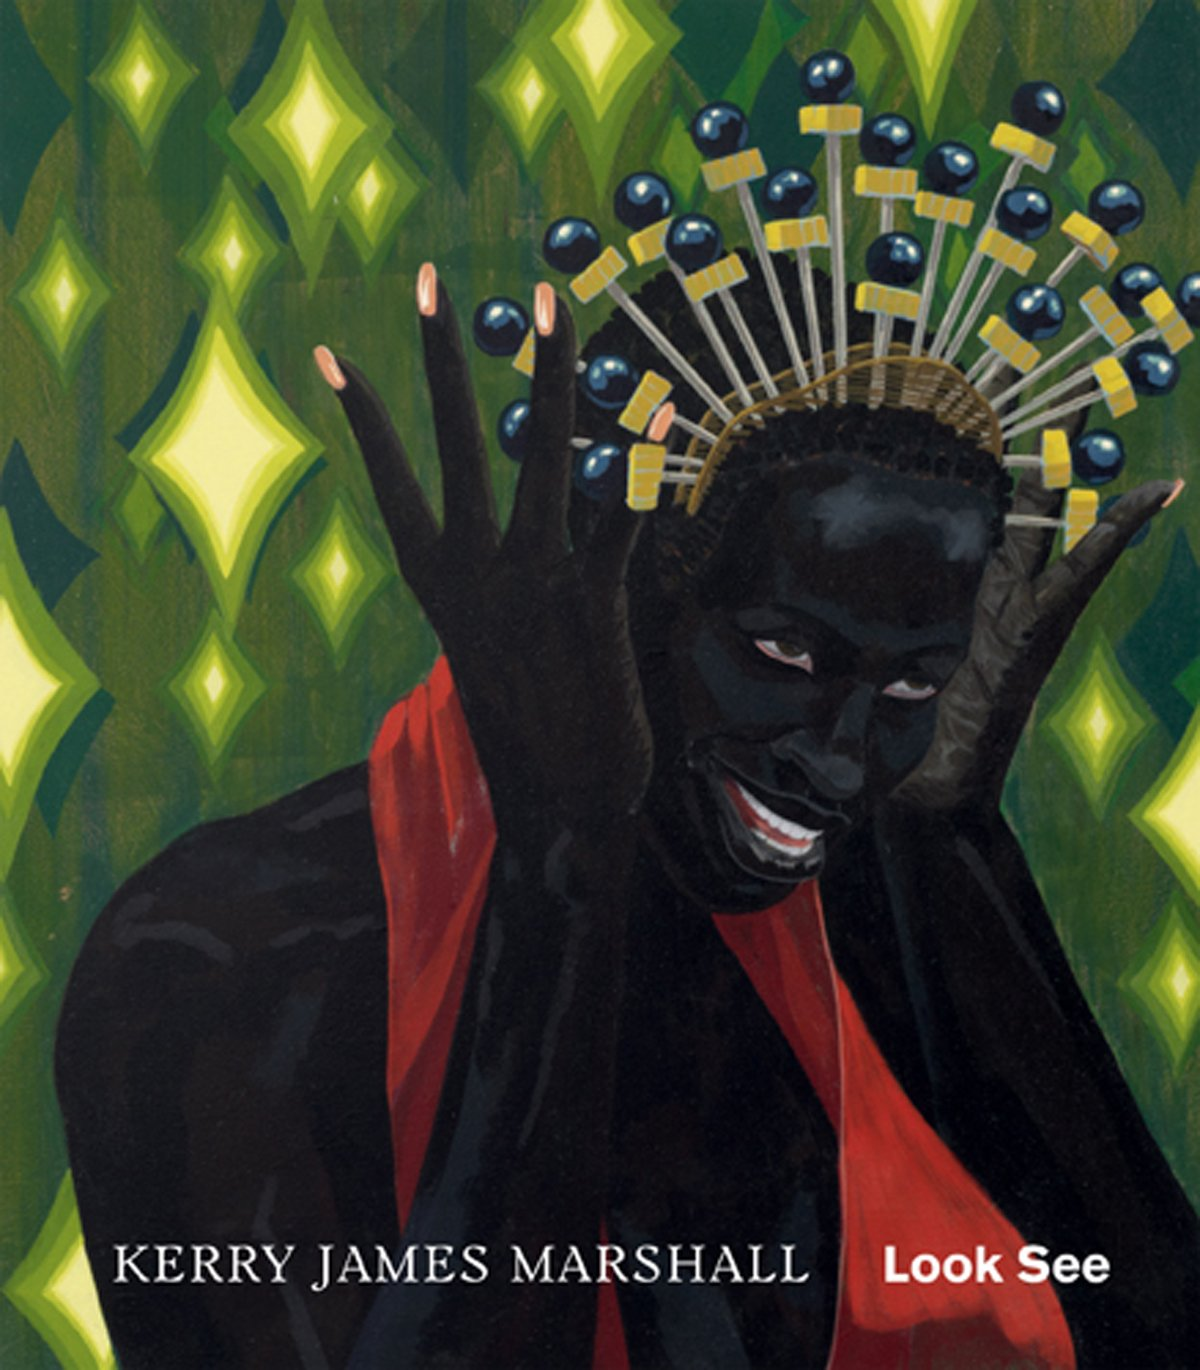 kerry james marshall essay To view kerry james marshall's artwork is to enter a world of allusions to and representations of people, places, events, fine art, literature, and popular culture from throughout history the mca's exhibition kerry james marshall: mastry, which opened at la moca this weekend, showcases the breadth .